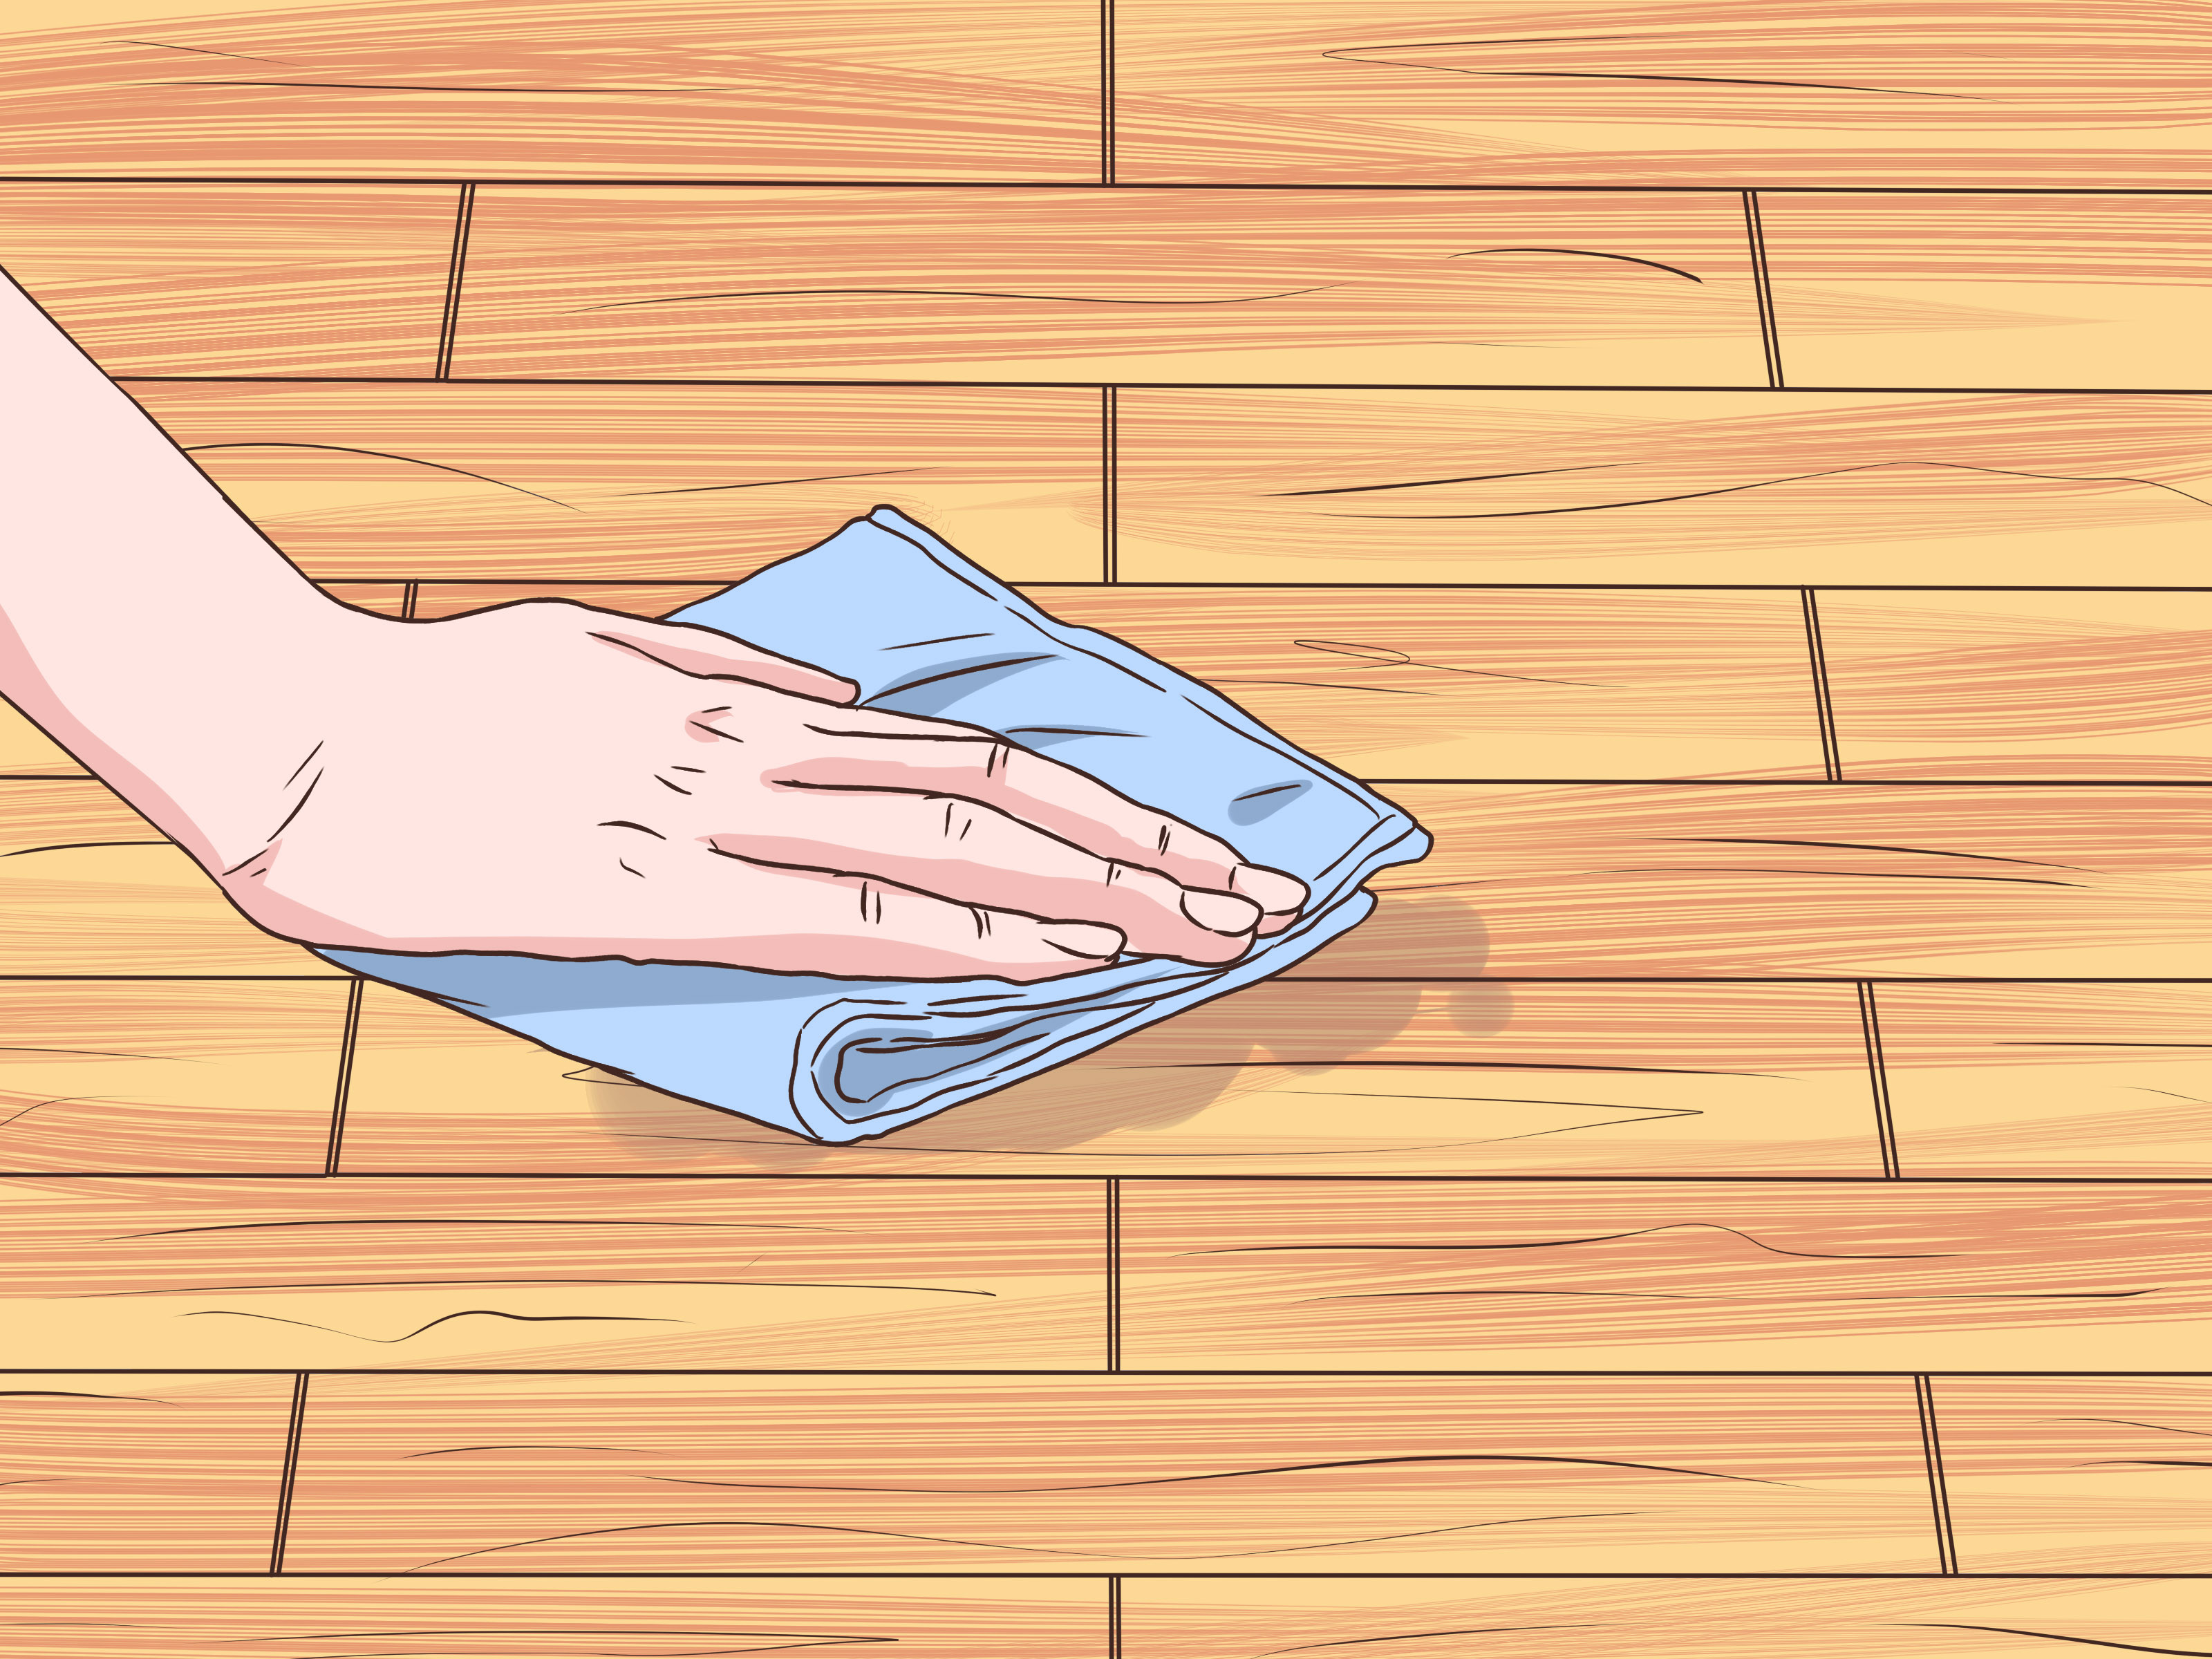 clean and wax hardwood floors of how to clean sticky hardwood floors 9 steps with pictures pertaining to clean sticky hardwood floors step 9